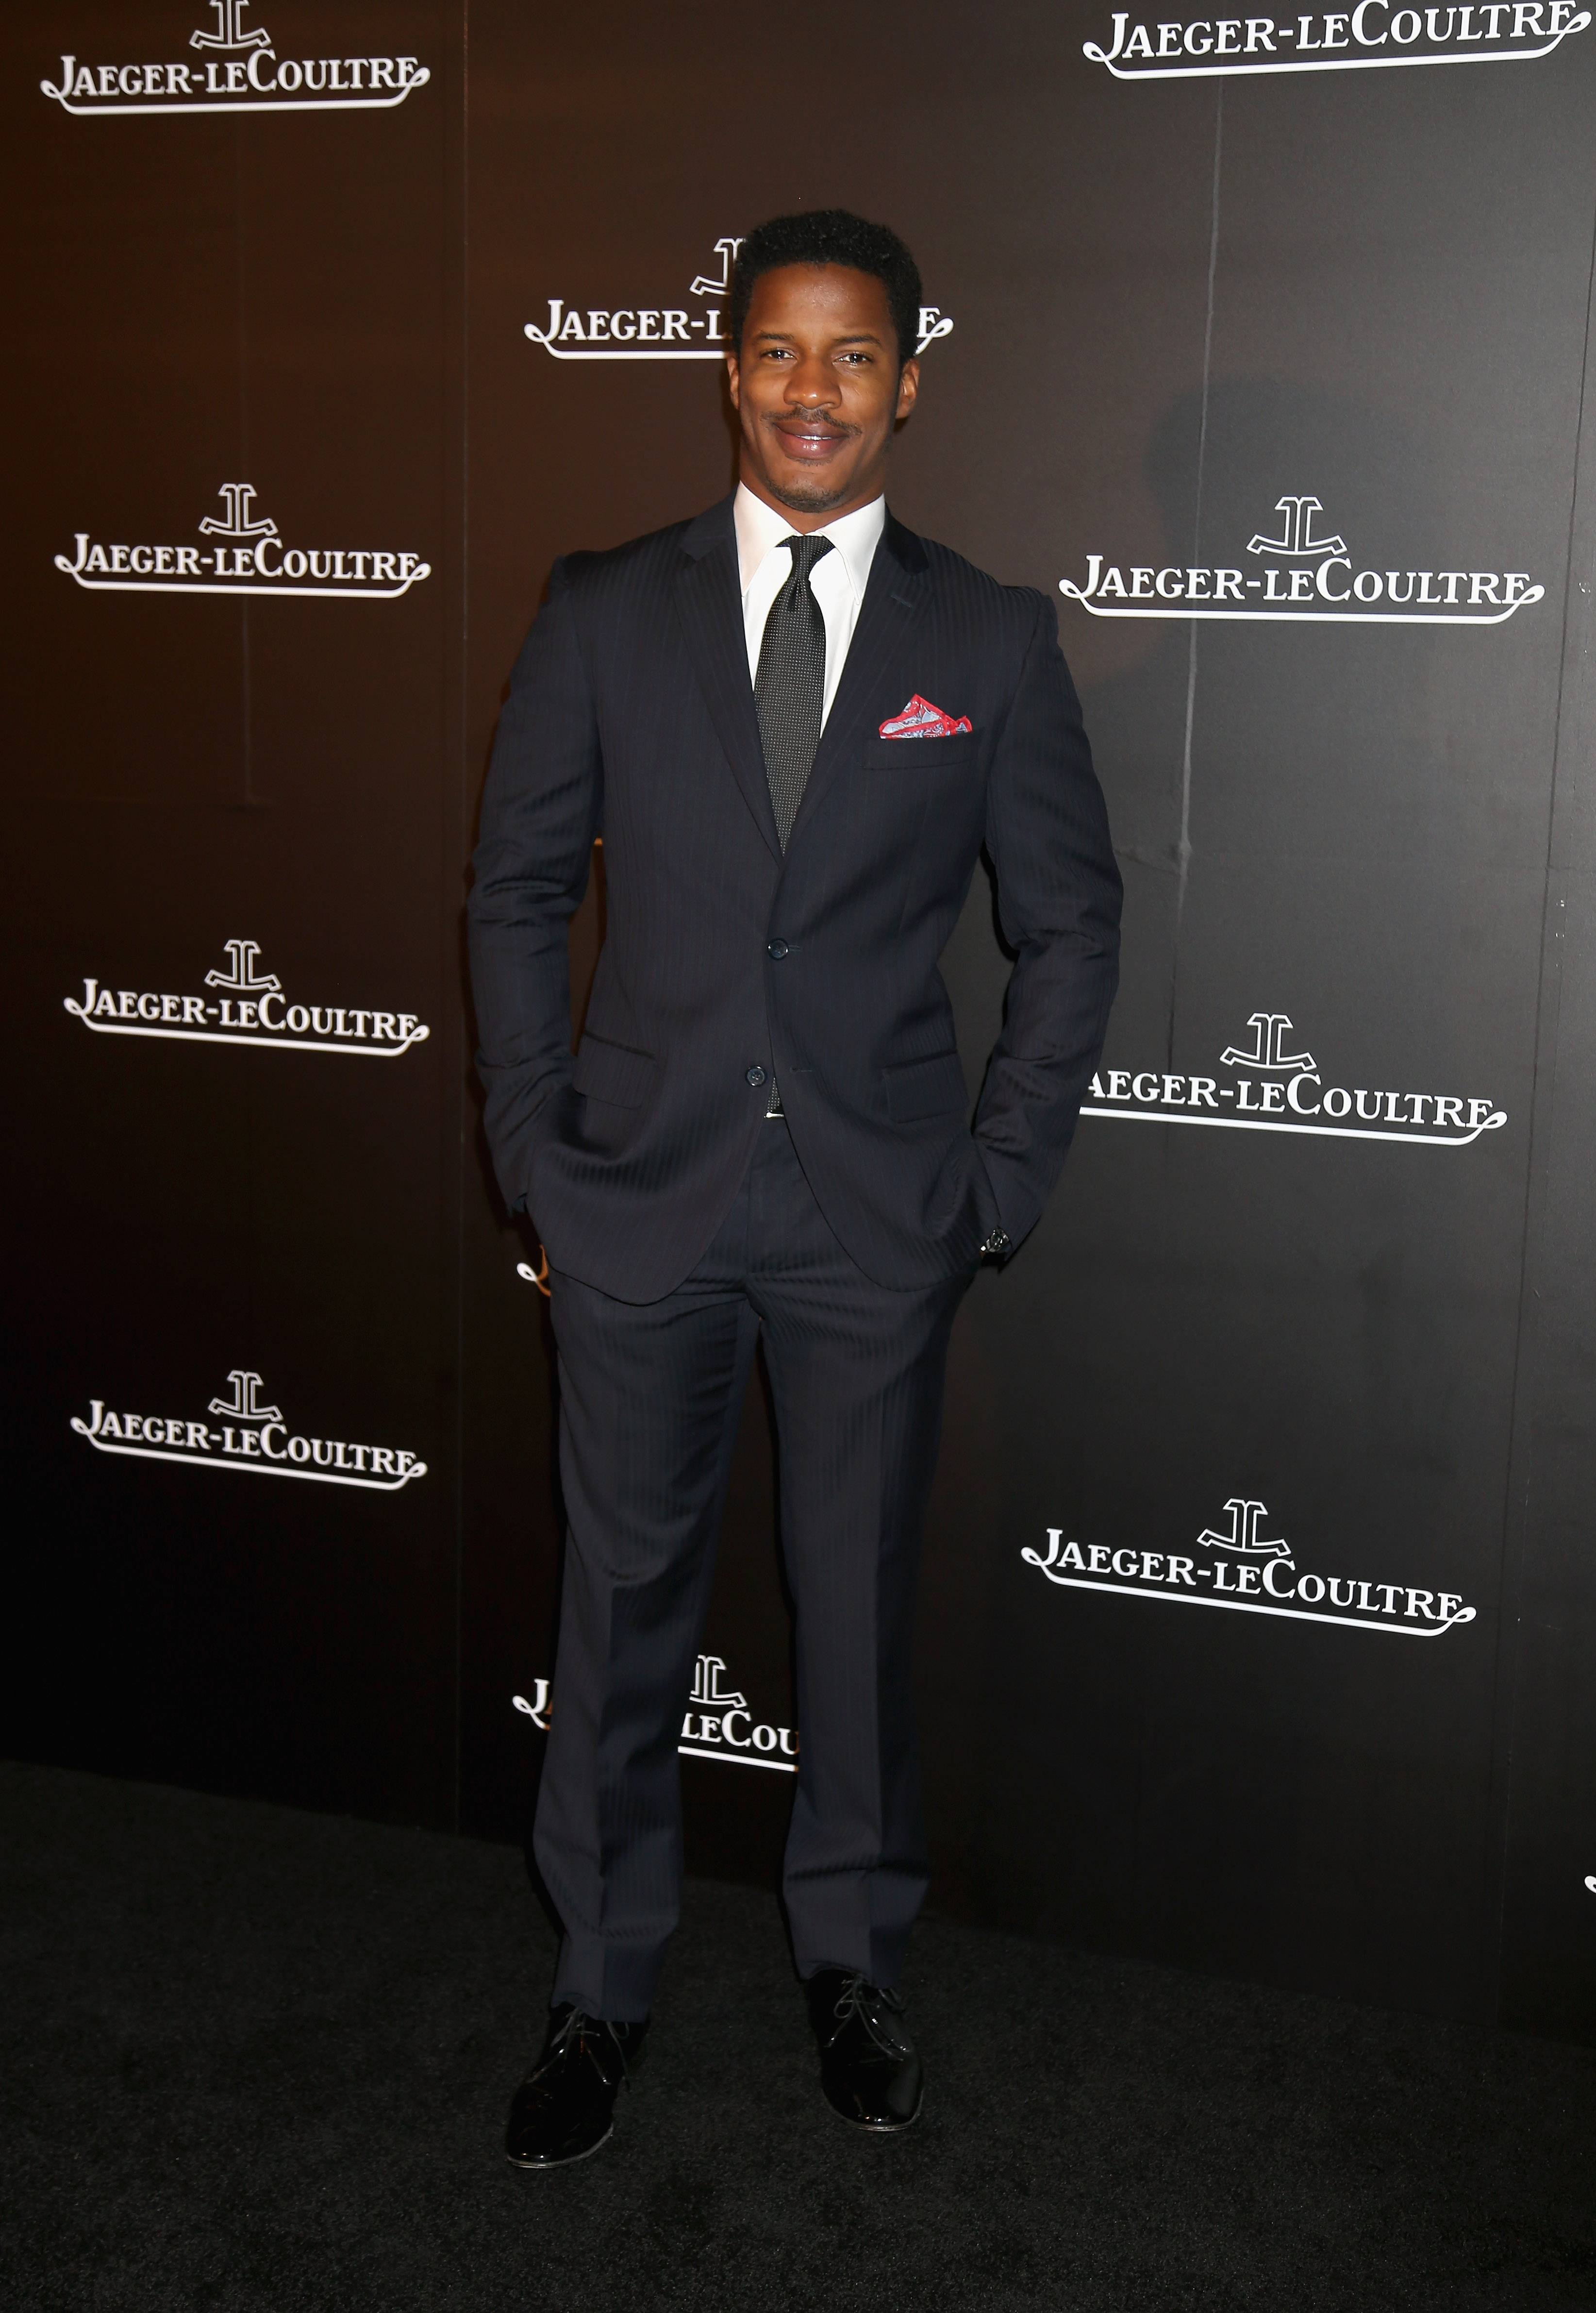 Abu Dhabi Film Festival 2012 – Day 3: Jaeger-LeCoultre Collection